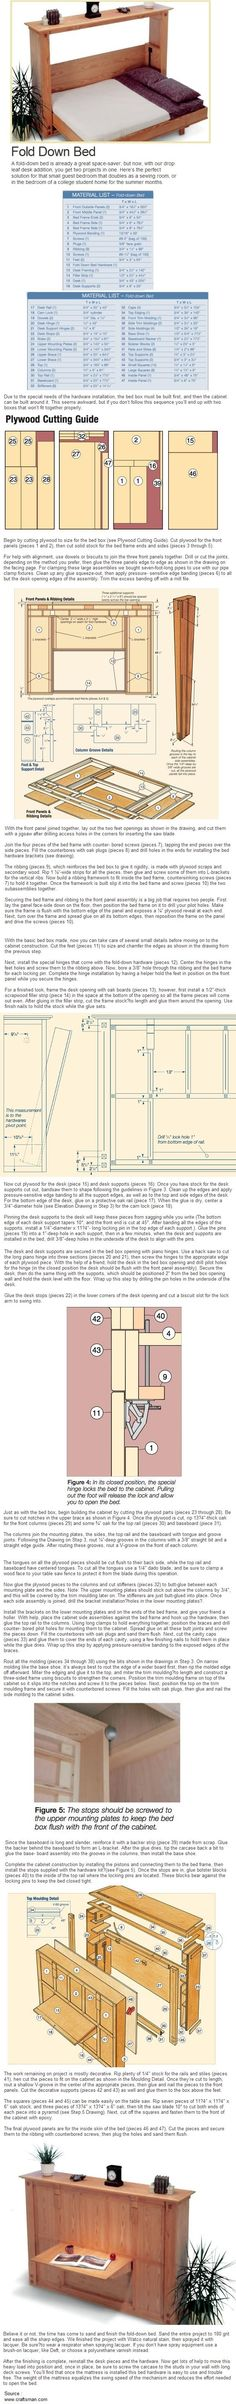 A guide for making a fold down bed. Make the most of tight spaces.